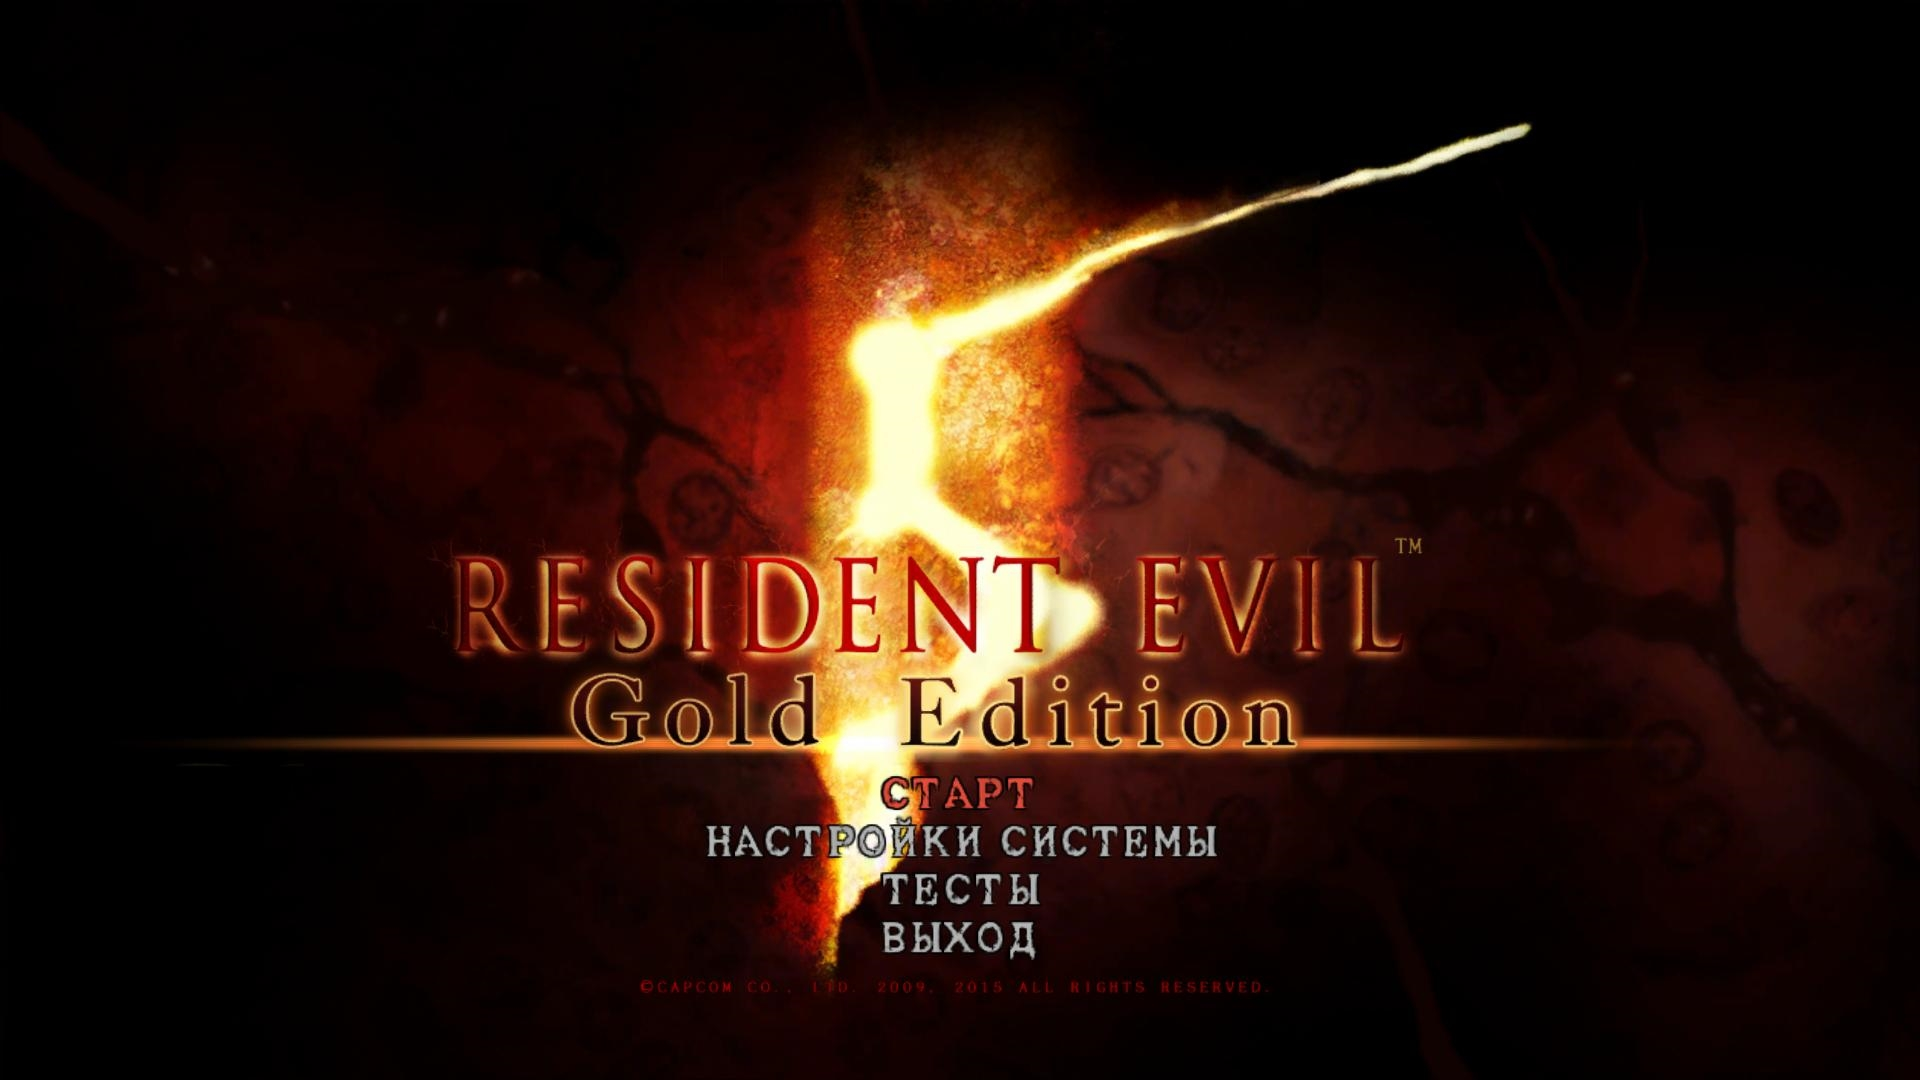 Resident Evil 5 (2009) [Ru/Multi] (1.0.0.129r1 (Update 1)) Repack R.G. Steamgames [Gold Edition]